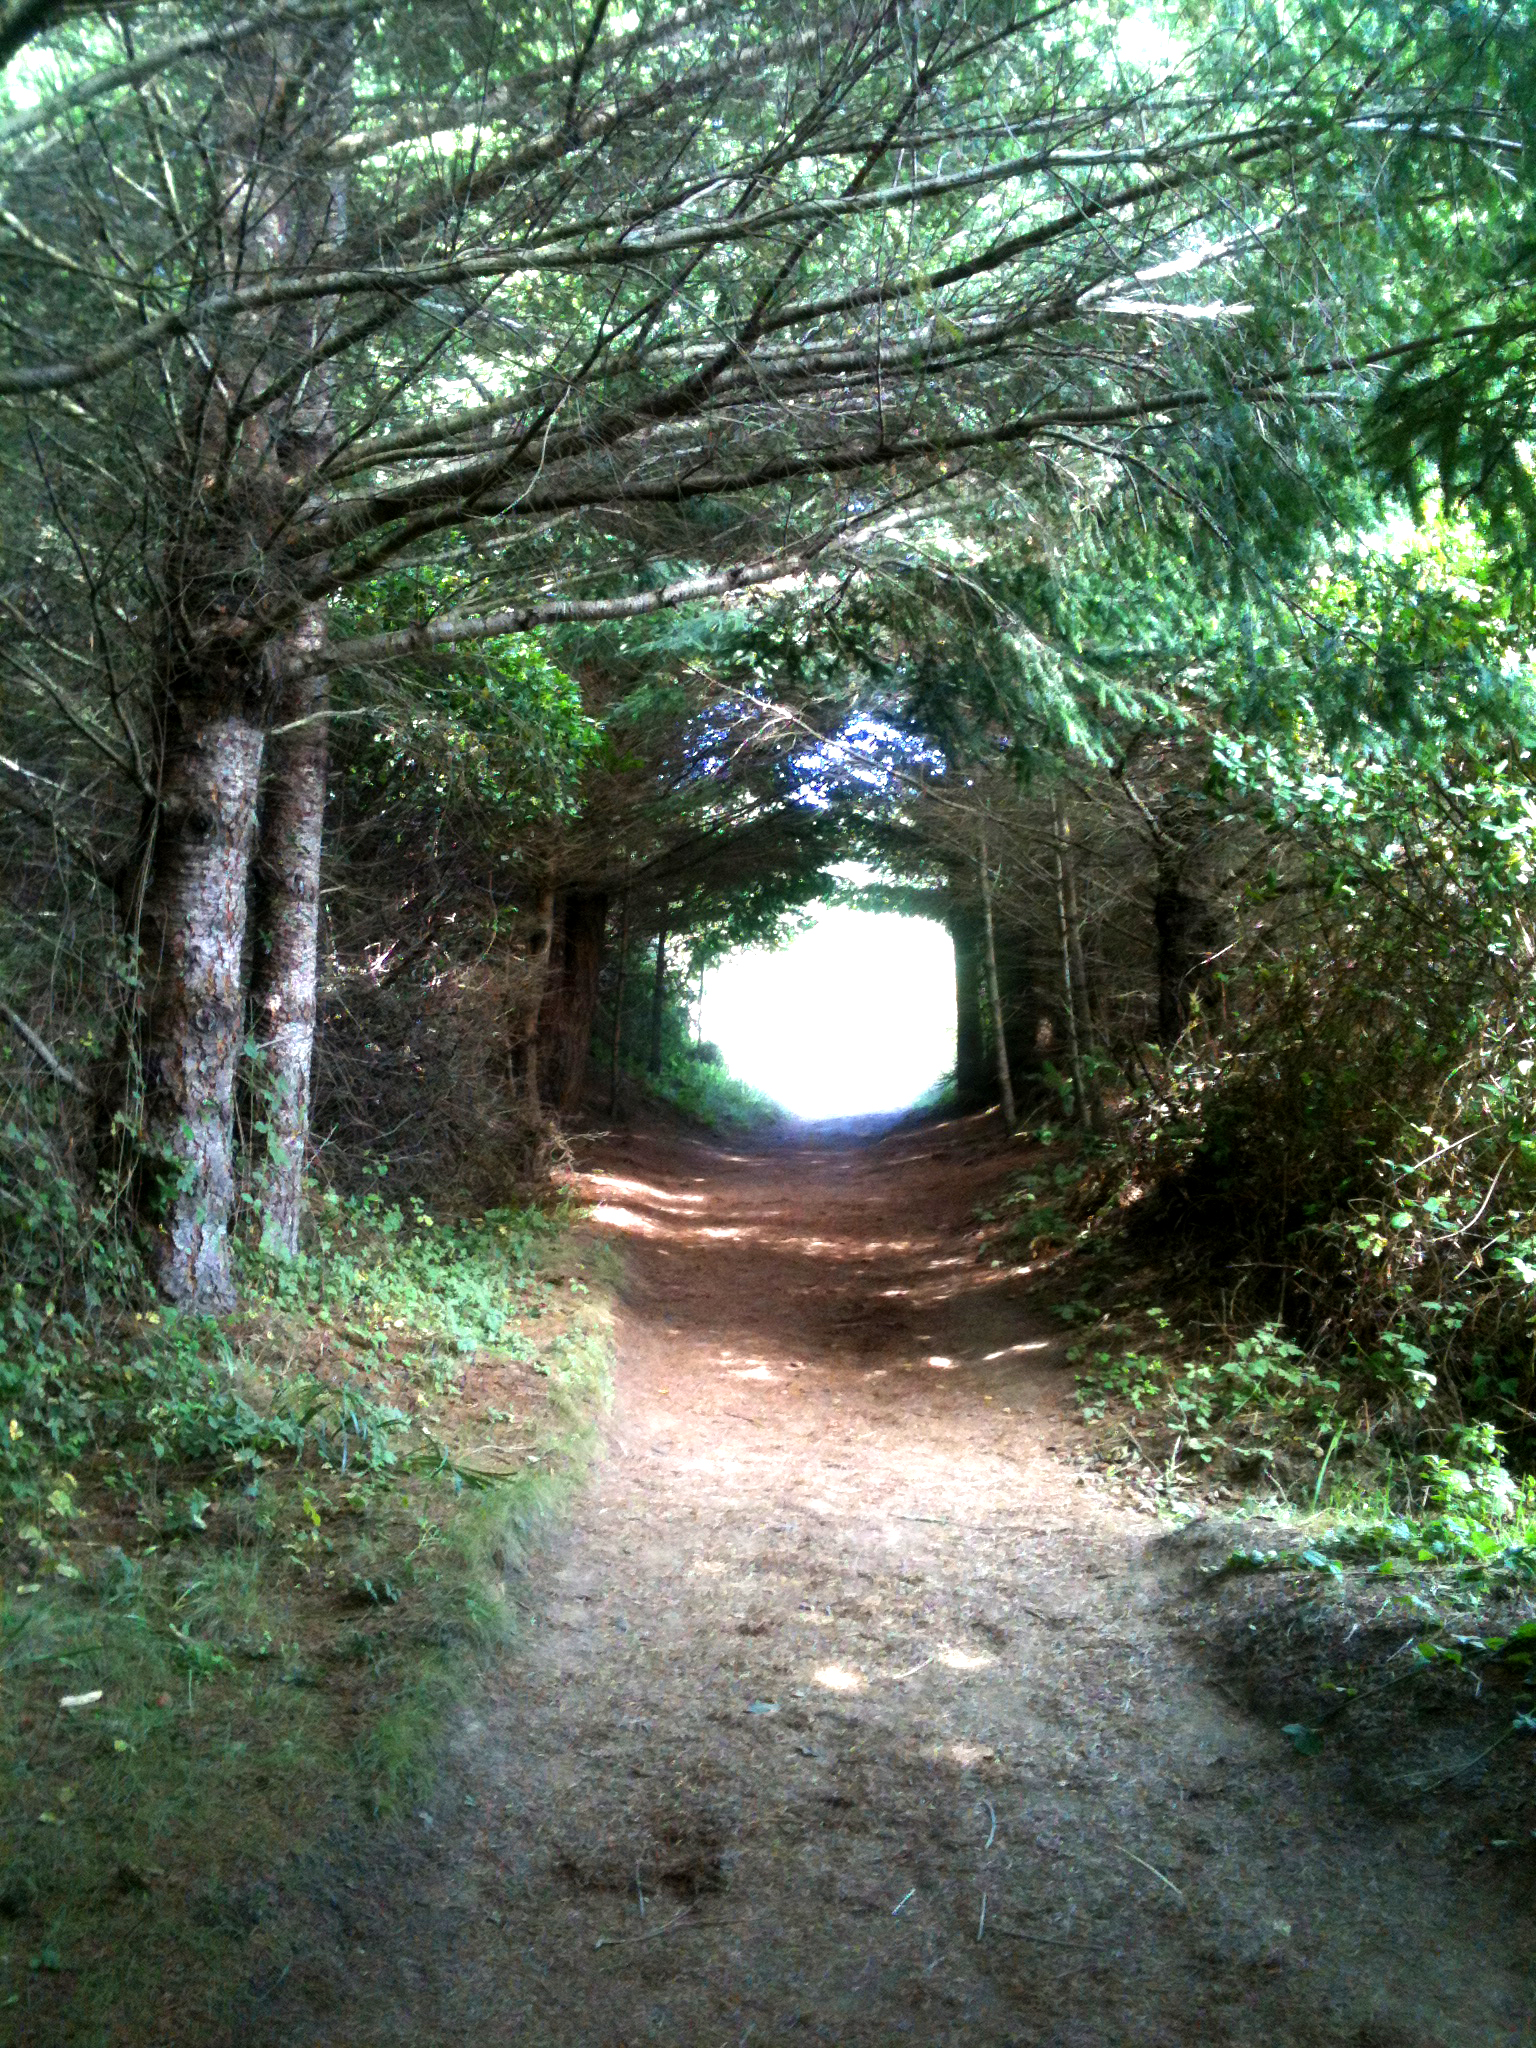 One of a few hallways on the hike.